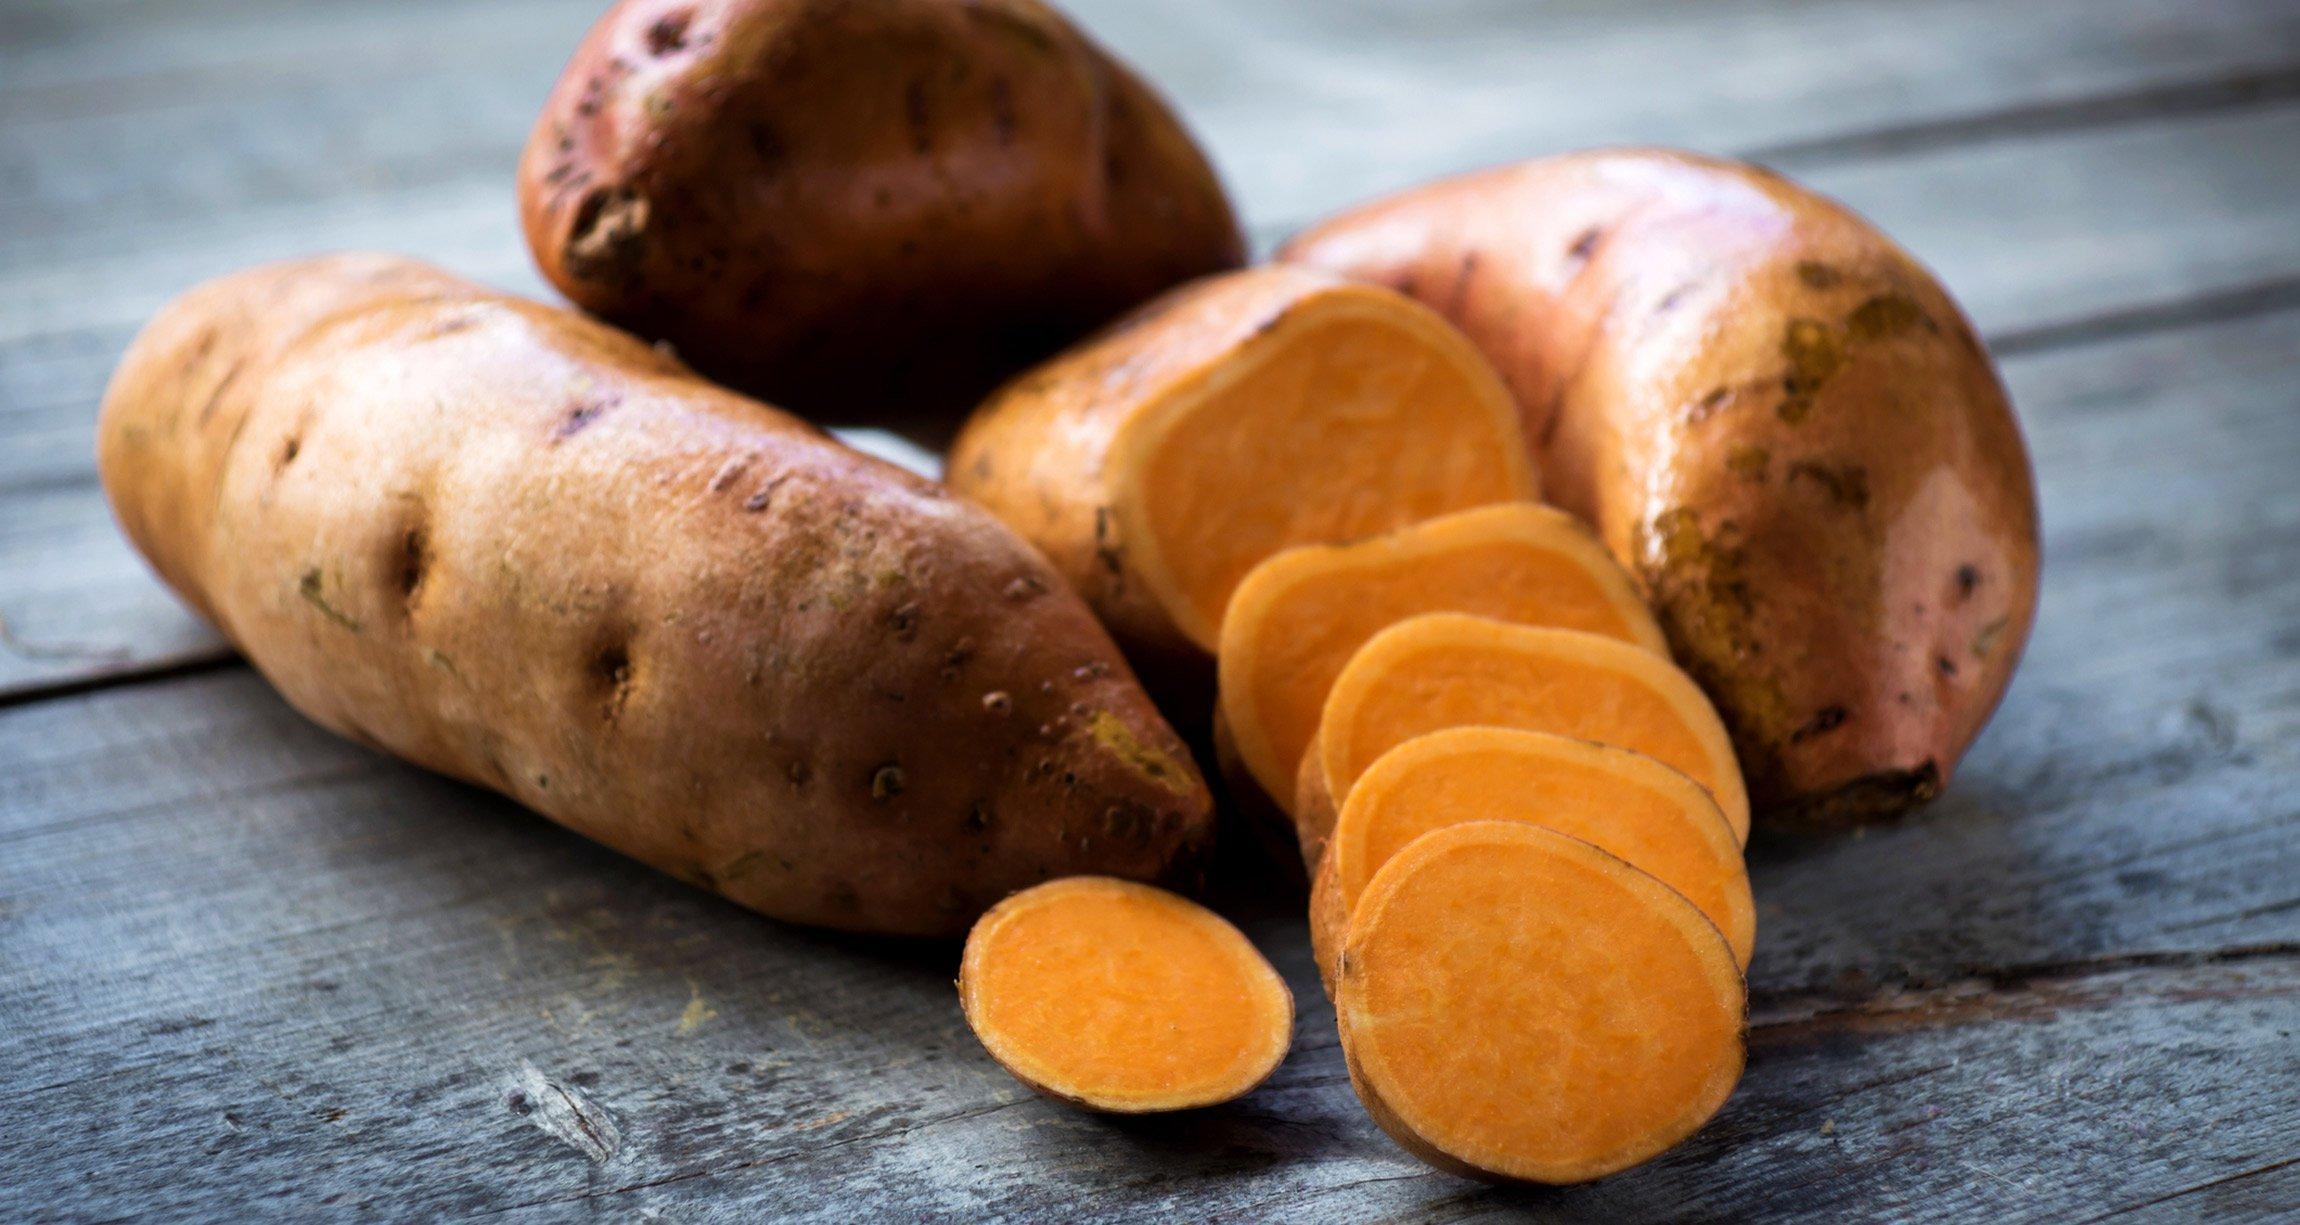 Cut up sweet potatoes